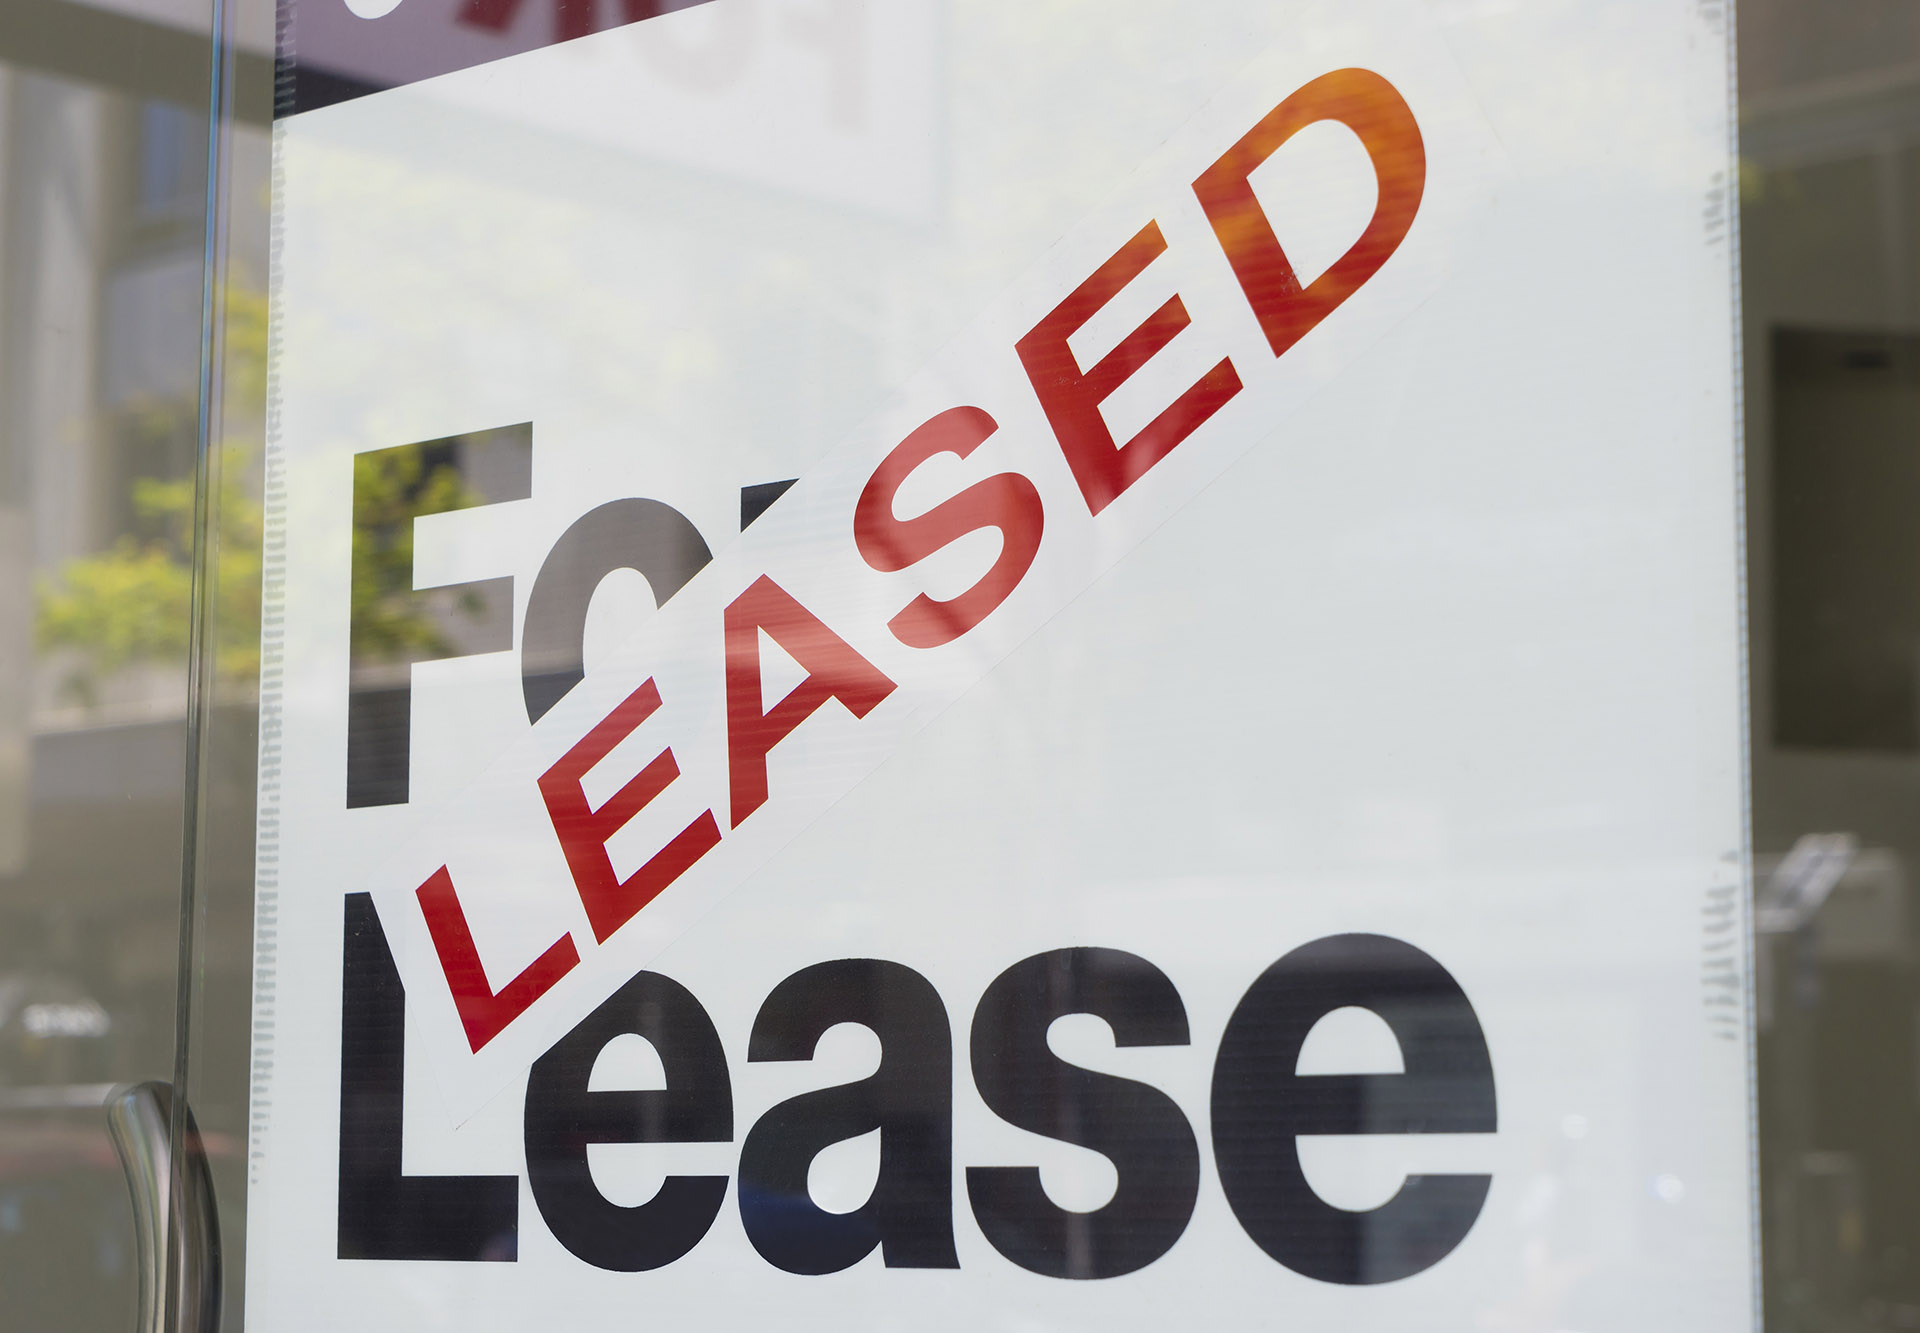 For lease and leased sign